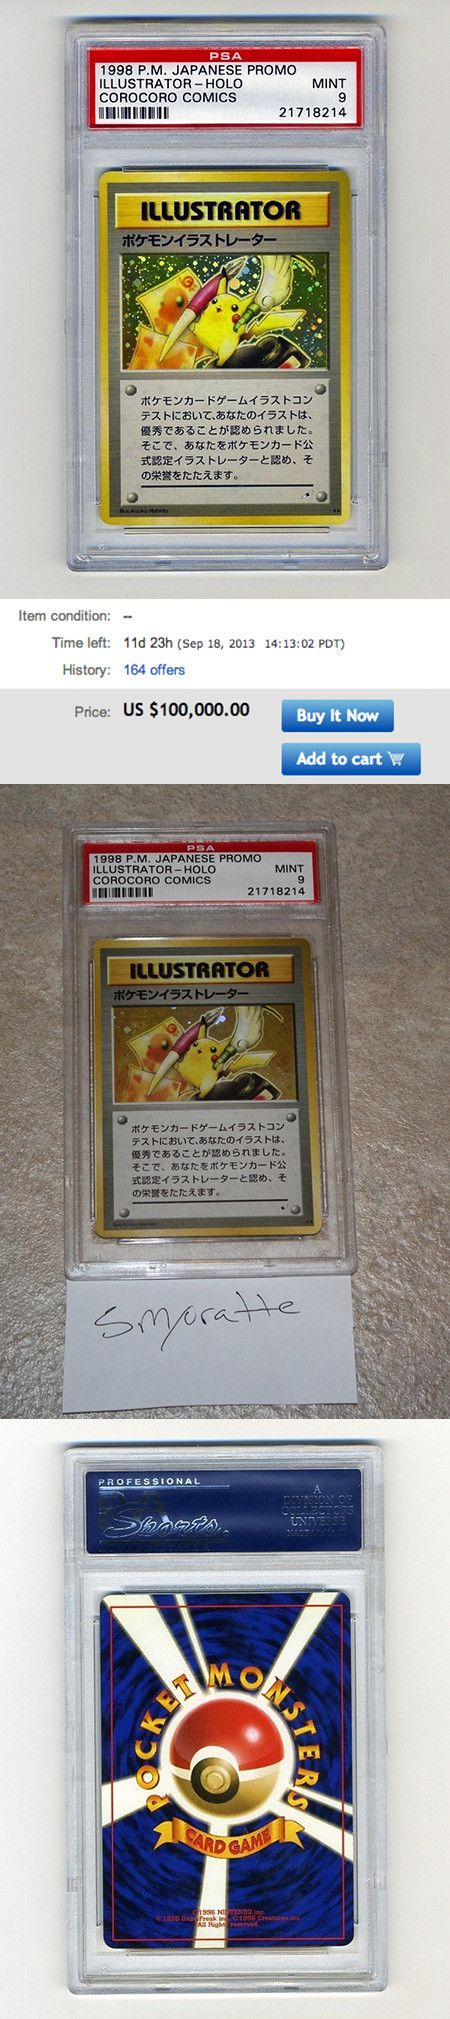 This is the world's rarest Pokemon card and it might set you back $100000. This card is considered to be among the rarest in the world. Only five copies are confirmed to be circulated, while another is in the hands of the Official Pokémon TCG Blog, making a total of six printed.